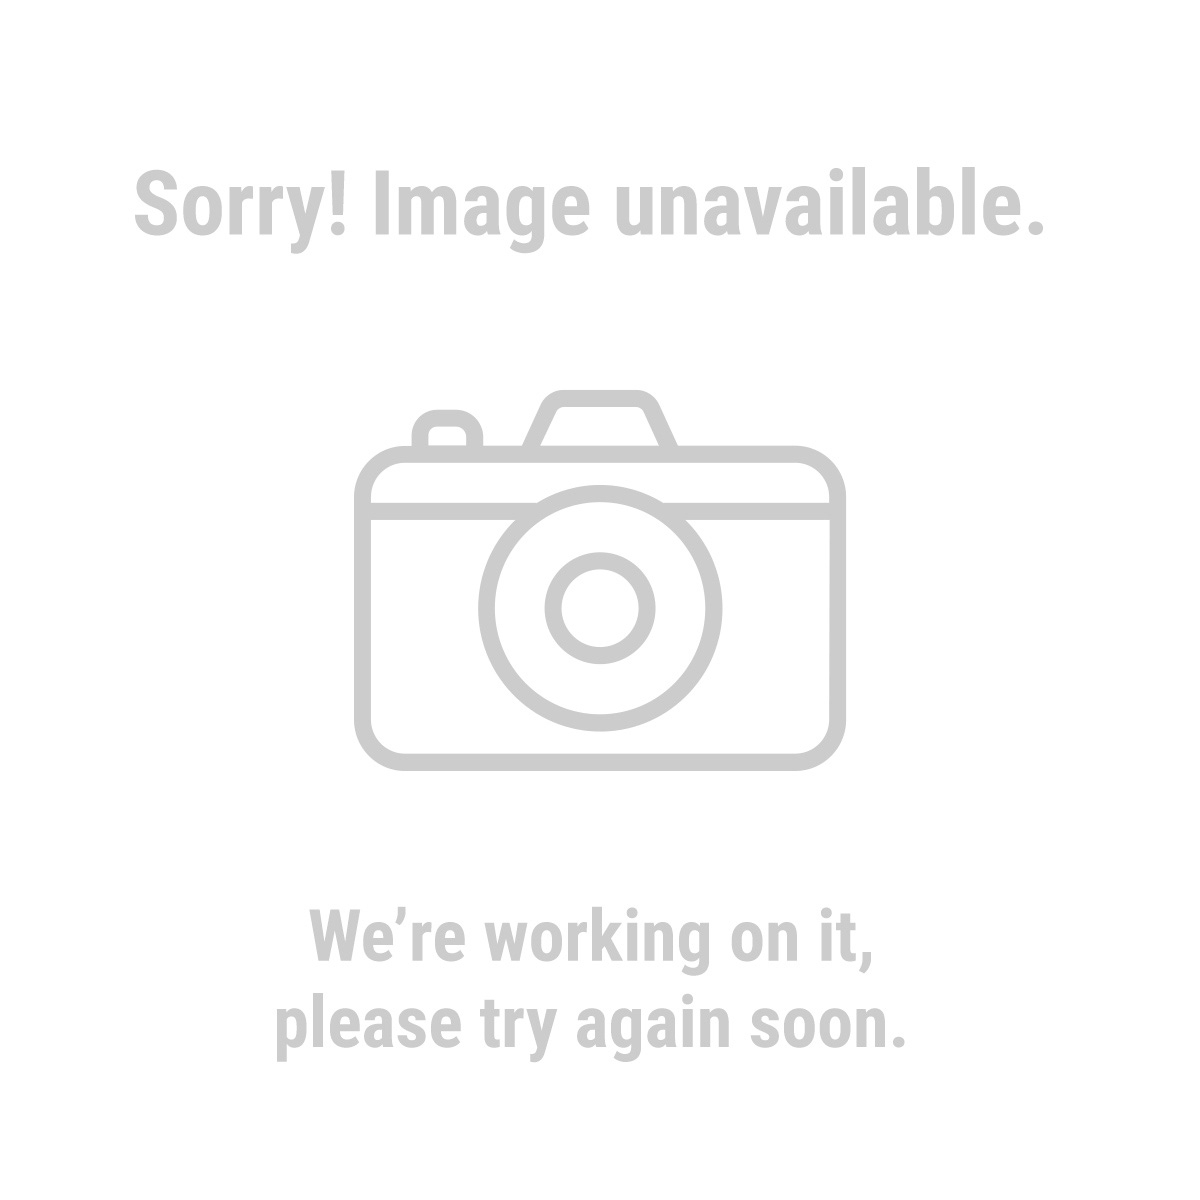 18 Volt 5-1/2in Cordless Circular Saw with Laser Guide System